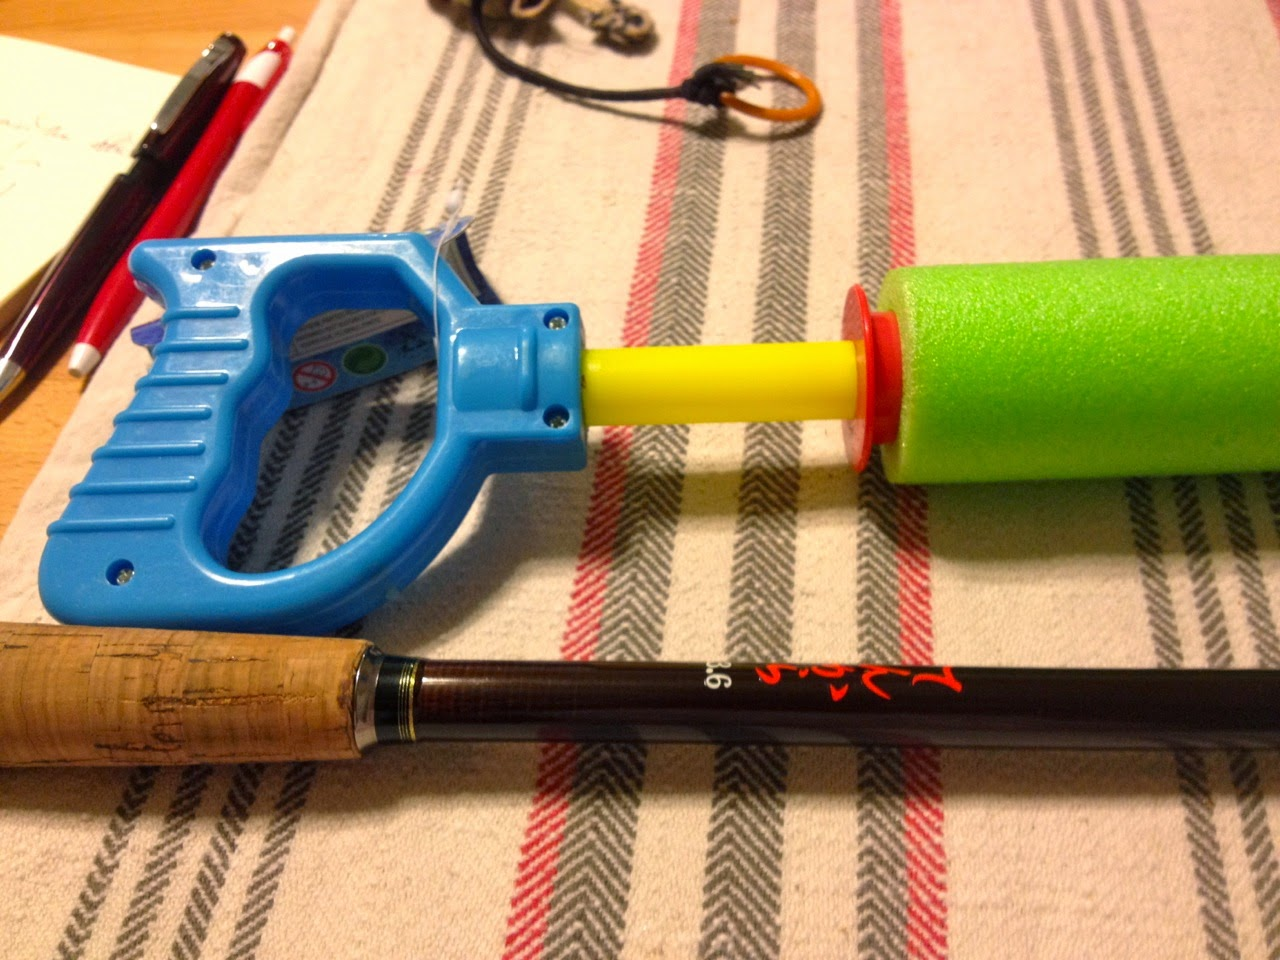 How To A Tenkara Rod Holster From A Squirt Gun, 5  A Fish In School-6841